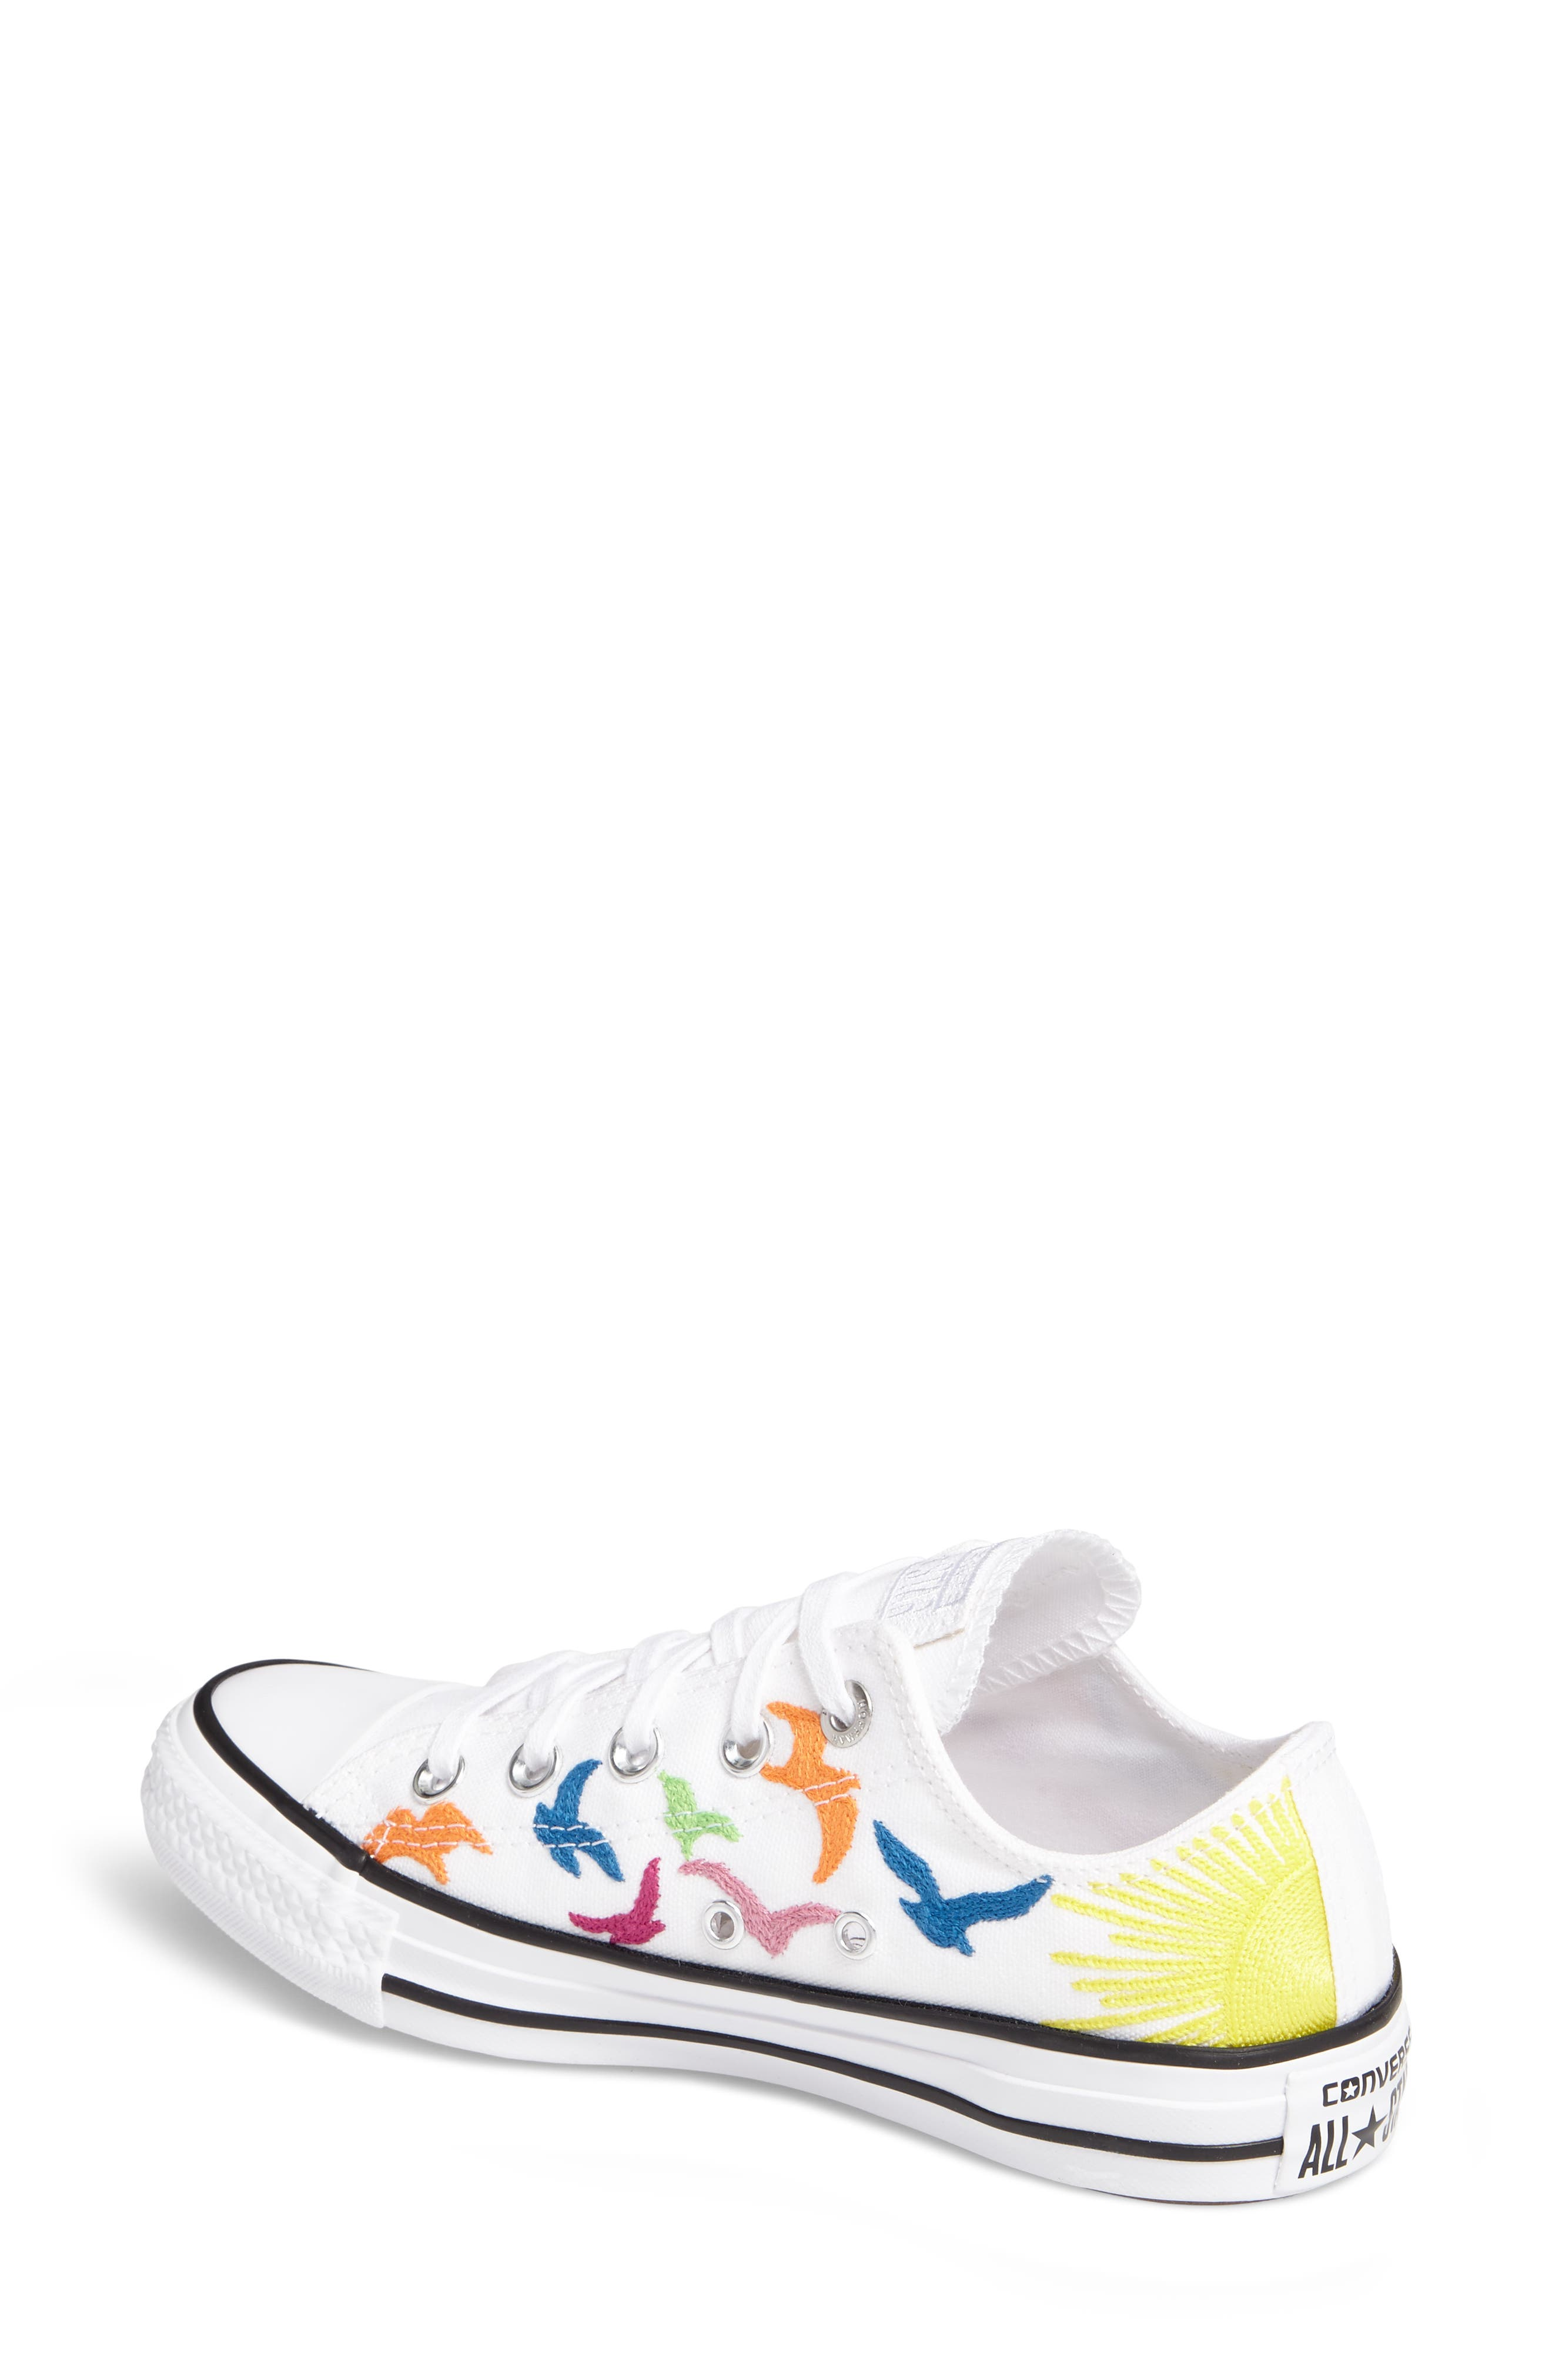 x Mara Hoffman All Star<sup>®</sup> Embroidered Ox Sneaker,                             Alternate thumbnail 2, color,                             100